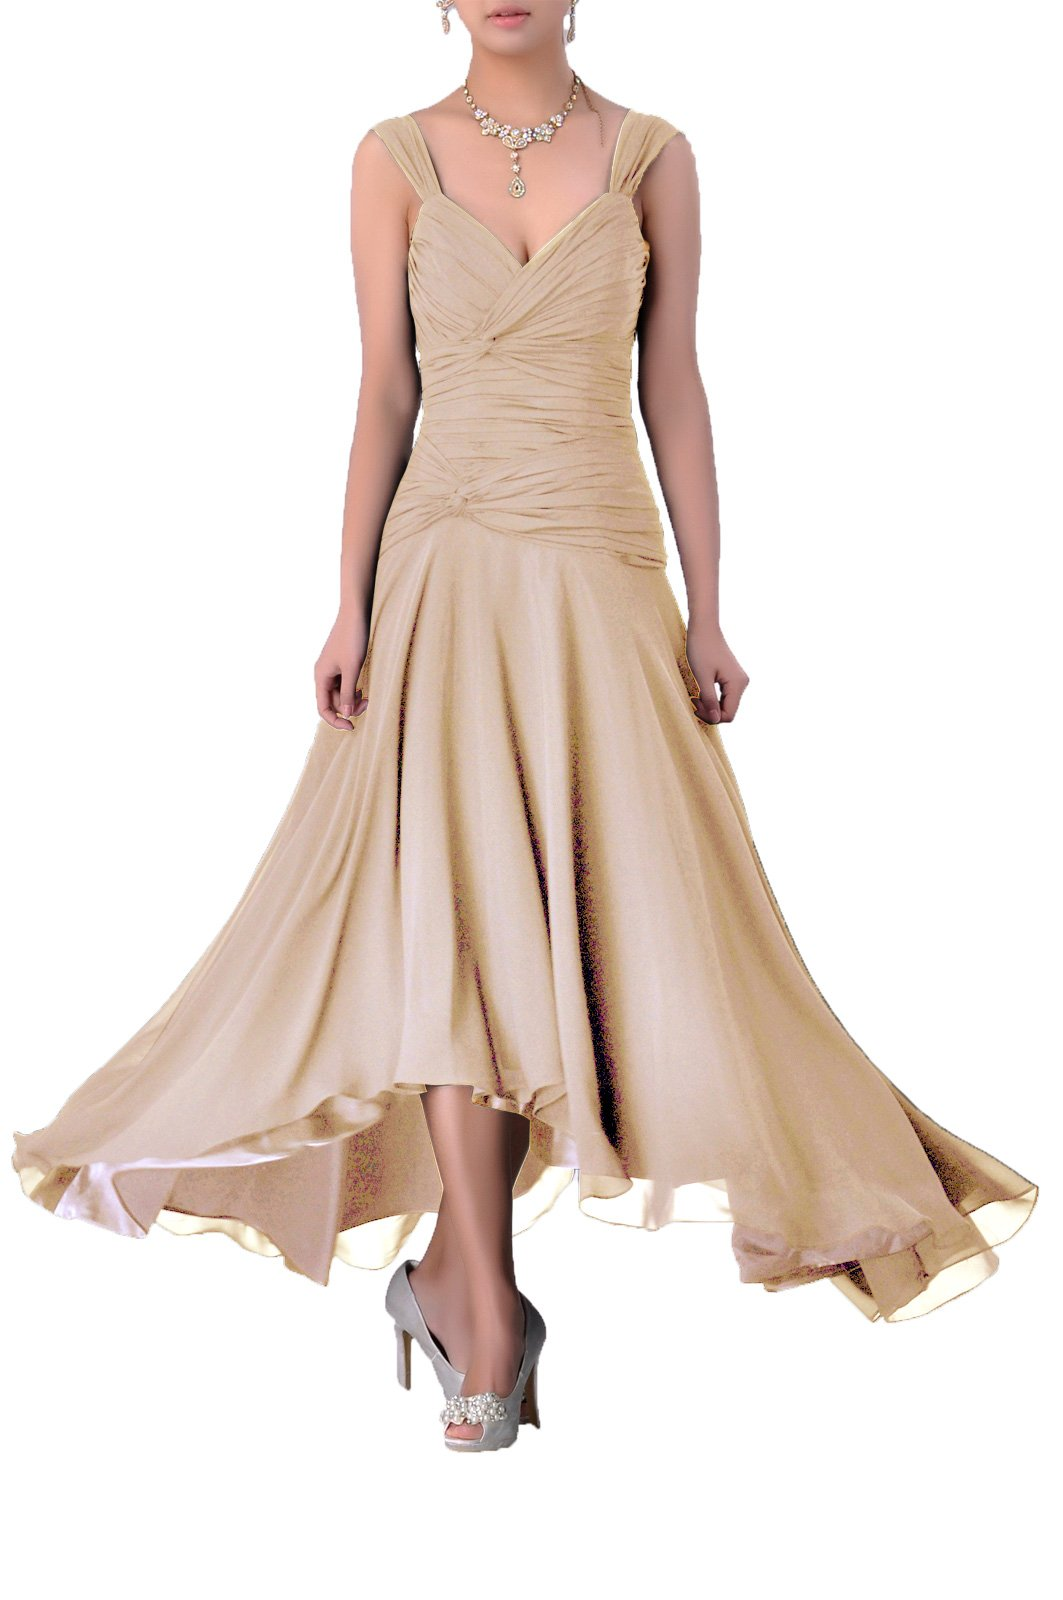 e44534827ee6 Adorona Mother Of The Bride Groom Dress Tea Length Formal Chiffon Special  Occasion Bridesmaid, Color Champagne,16